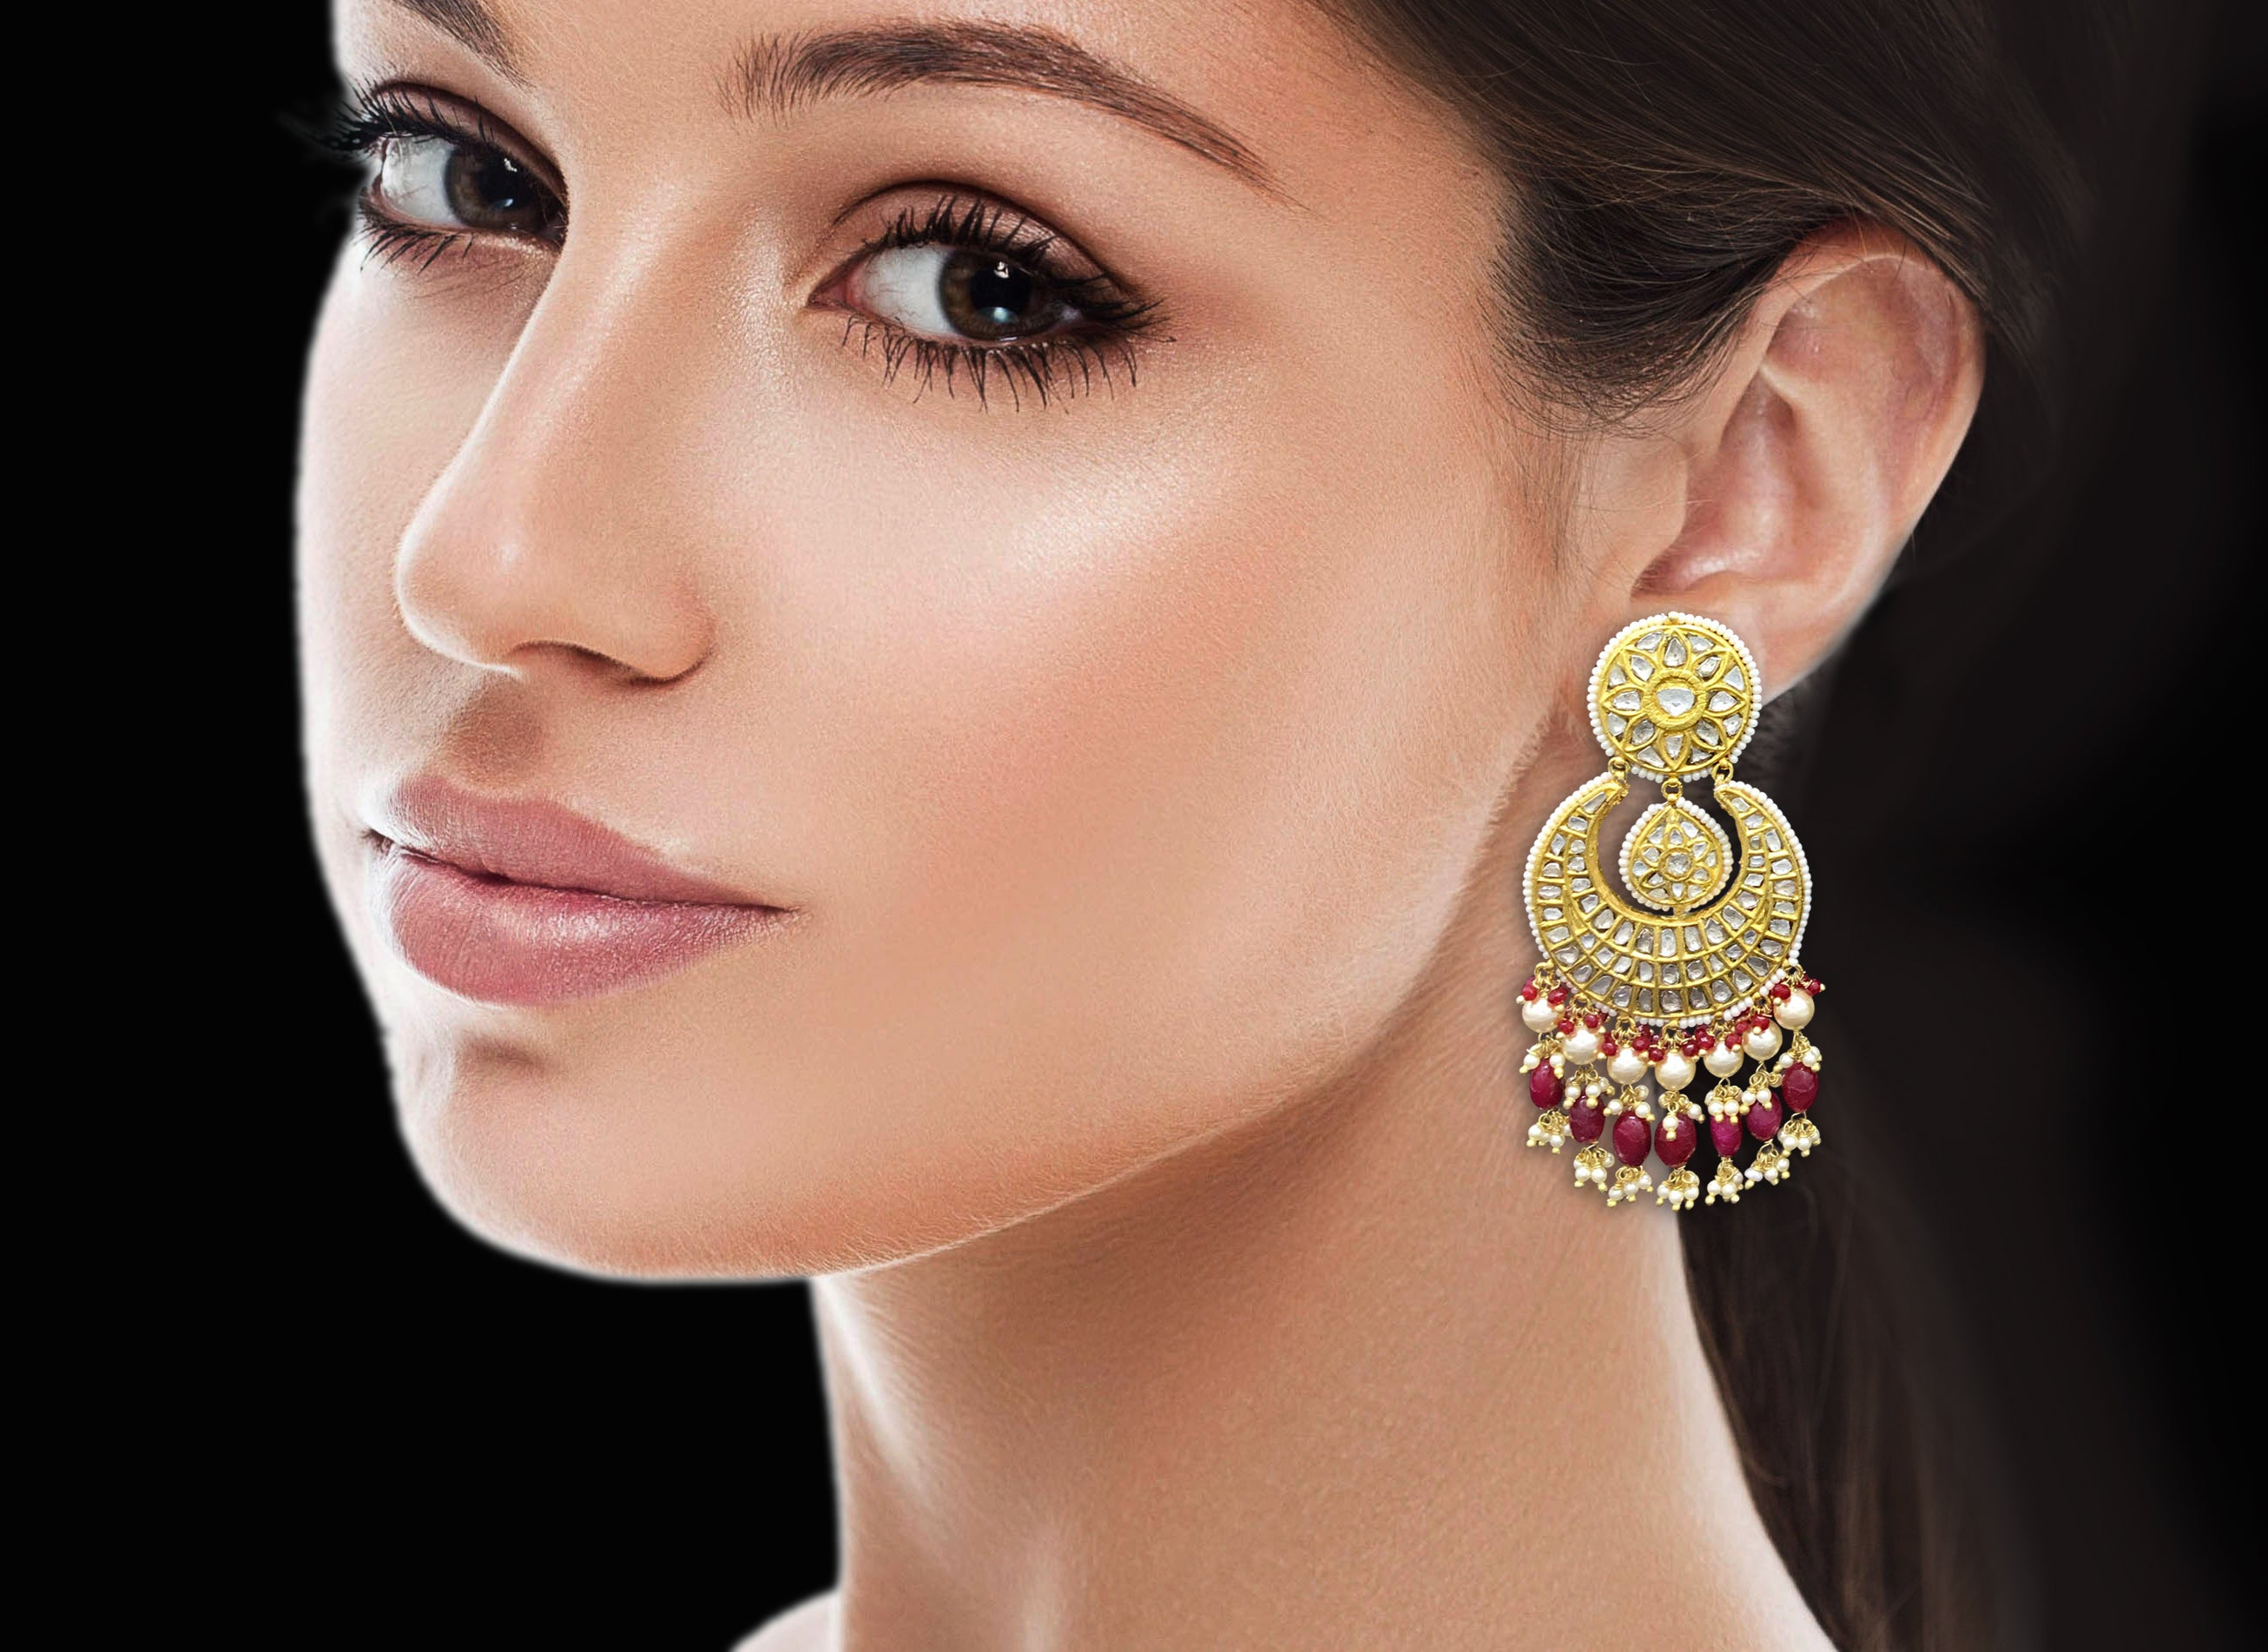 23k Gold and Diamond Polki Chand Bali Earring pair with rubies in chandelier-style - G. K. Ratnam